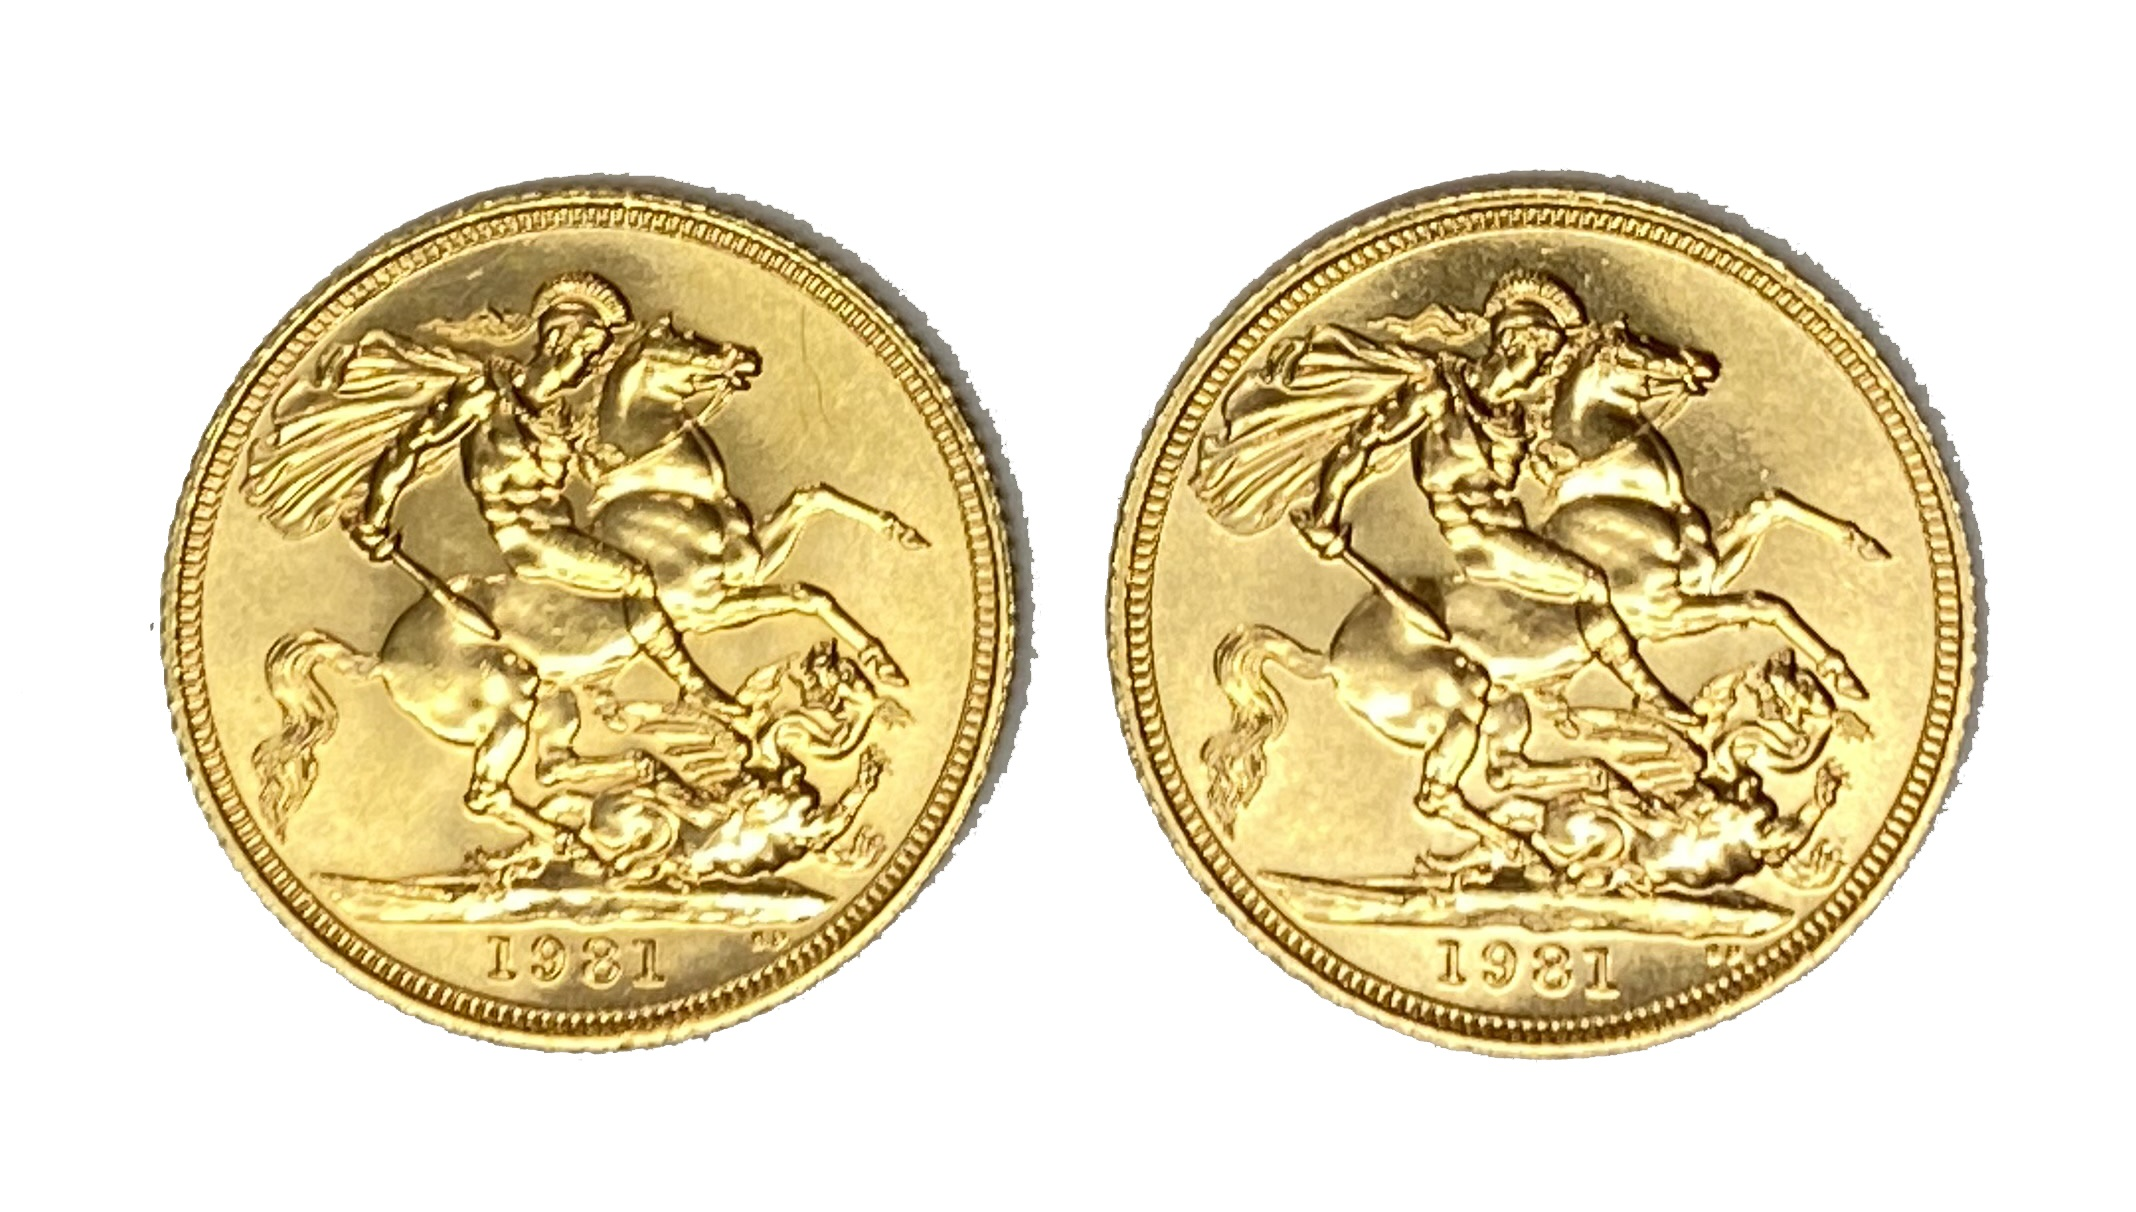 Elizabeth II two gold Sovereign coins, 1981 - Image 2 of 2